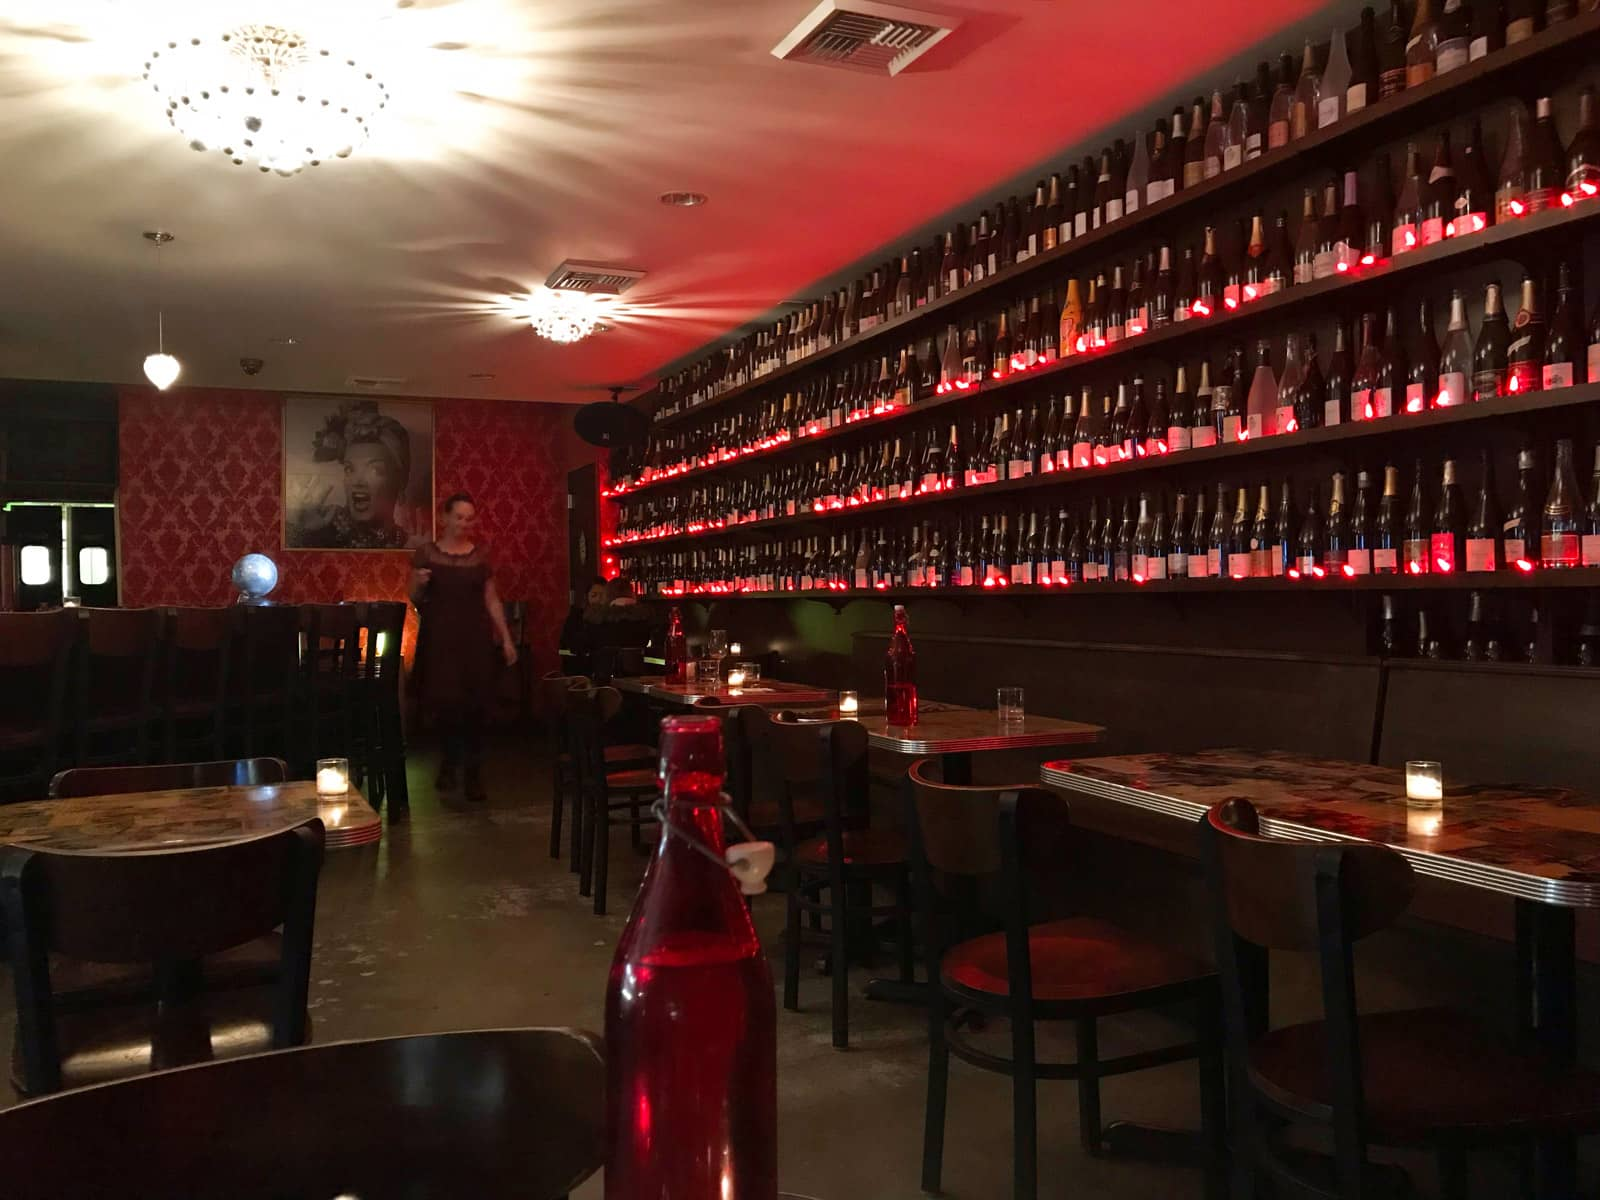 The dark and dimly lit interior of a cafe, with red decor. Wine bottles line the walls along with fake red candles.